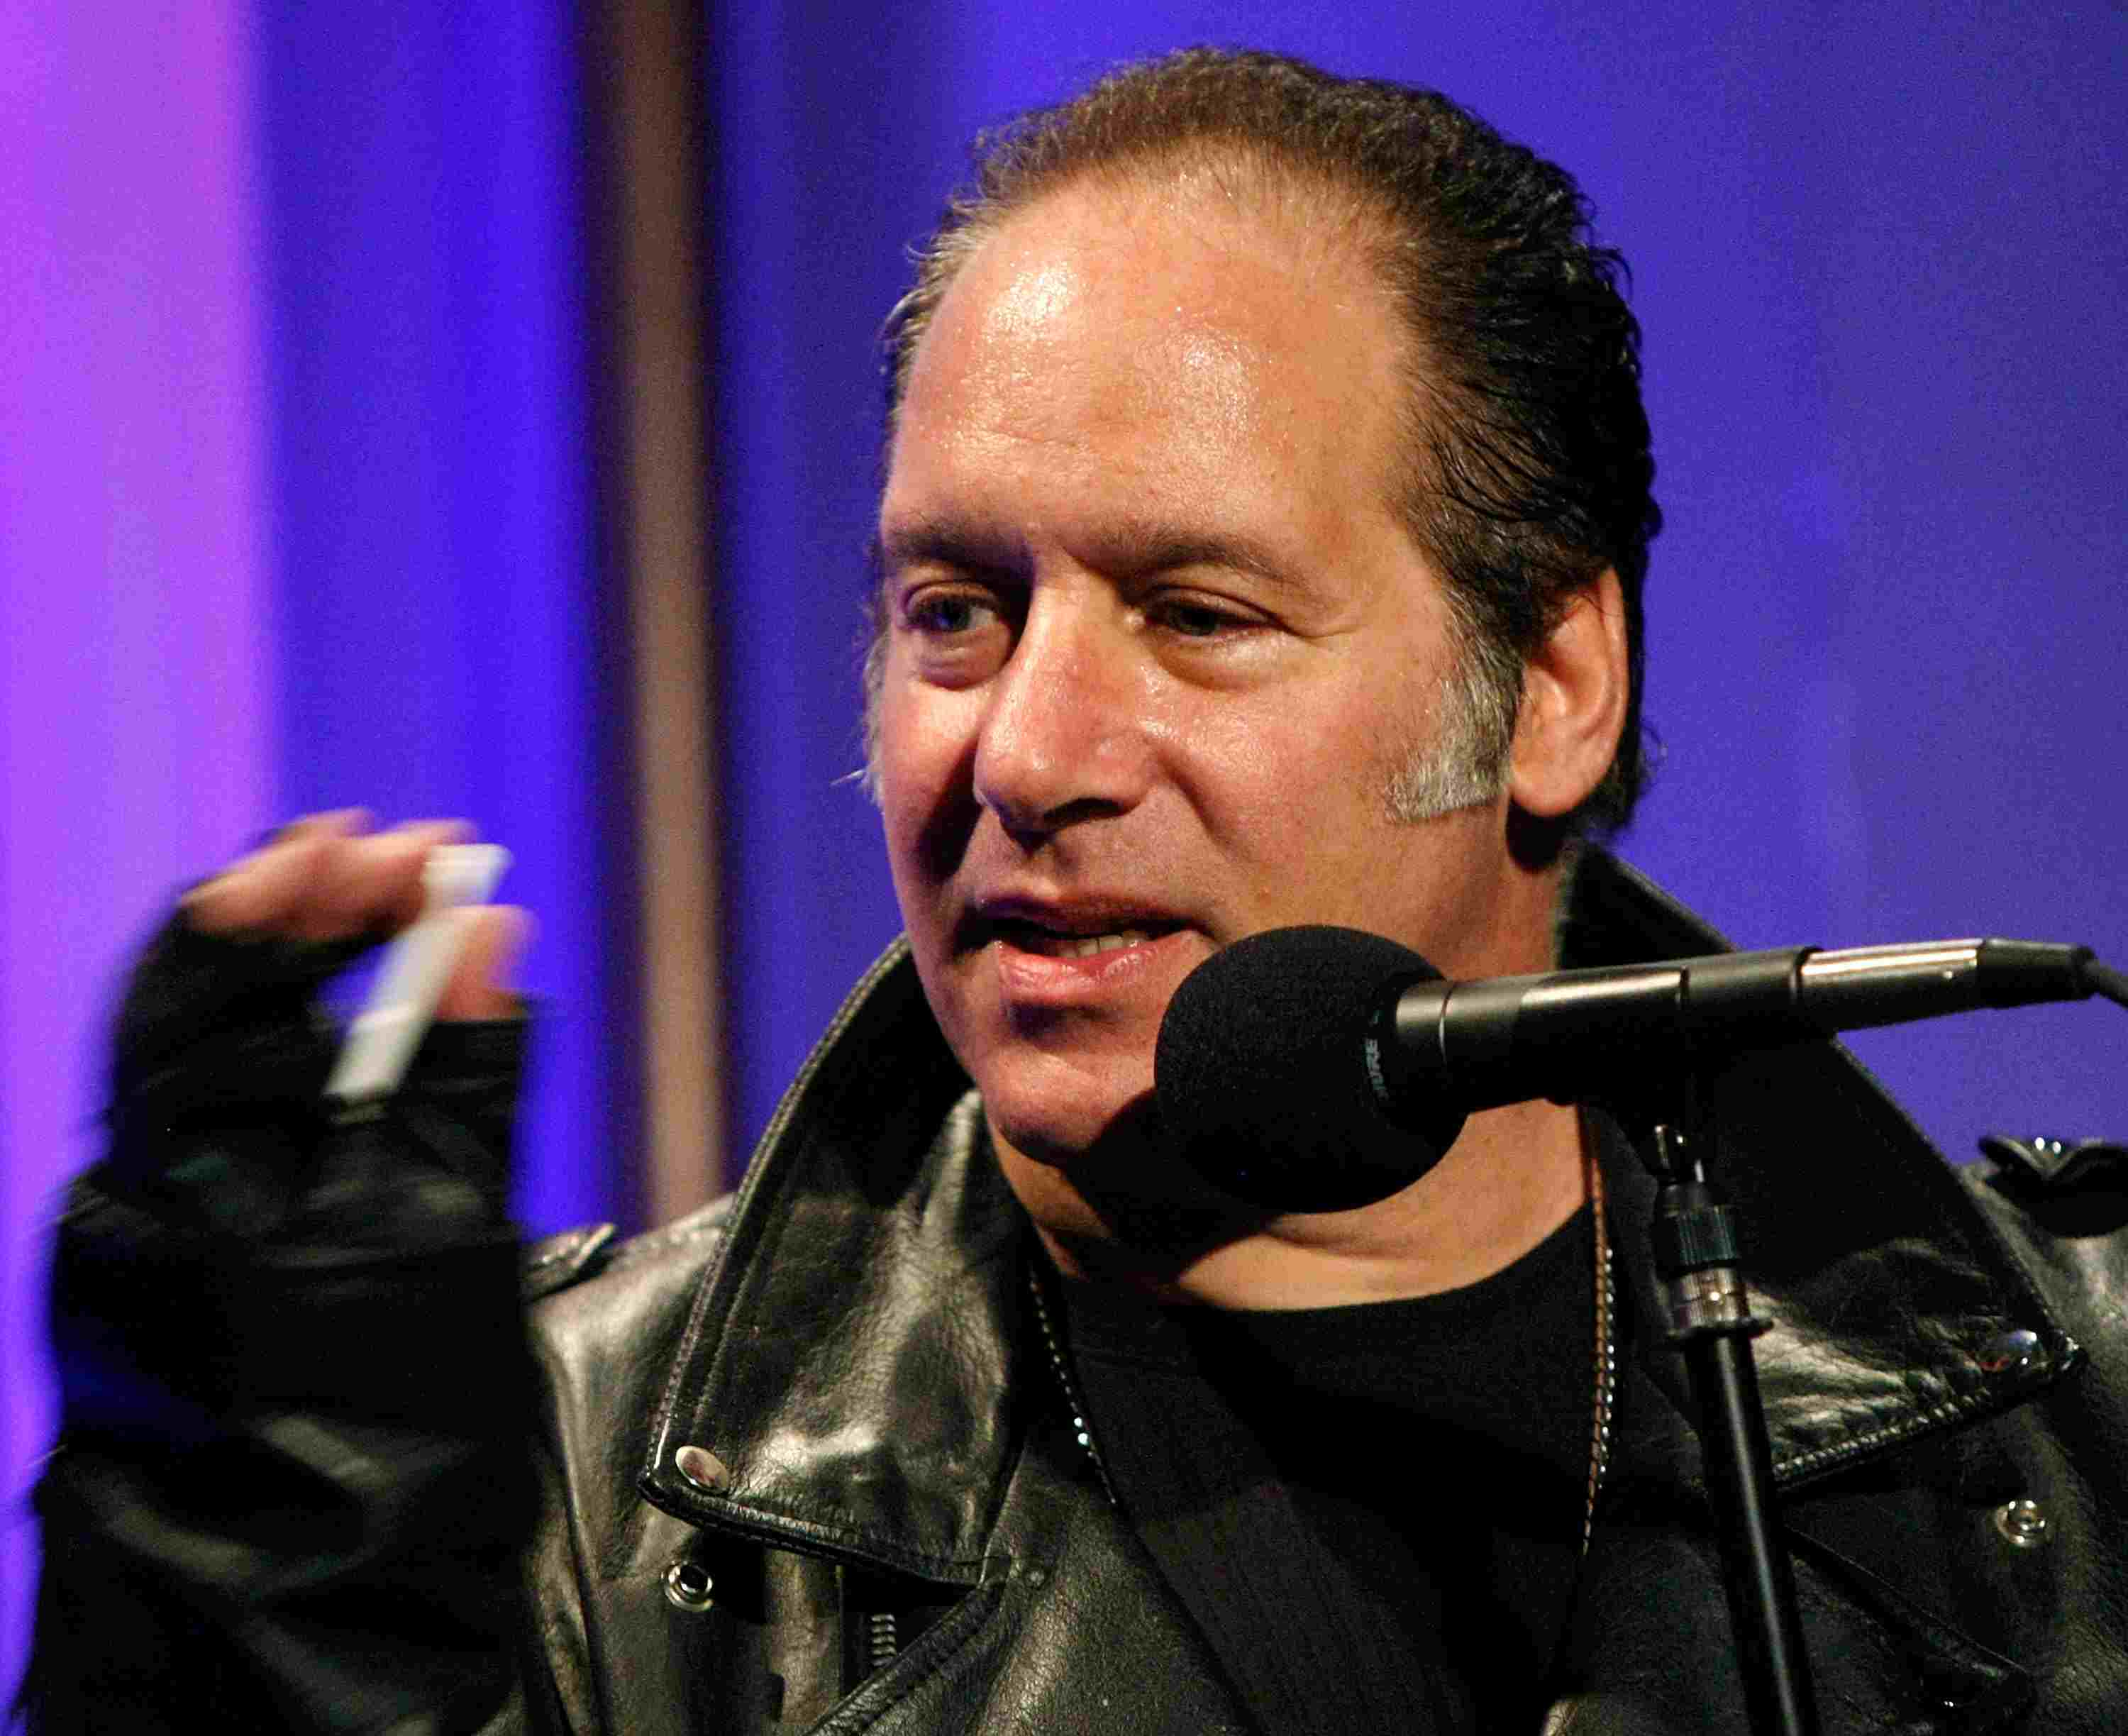 Comedian Andrew Dice Clay